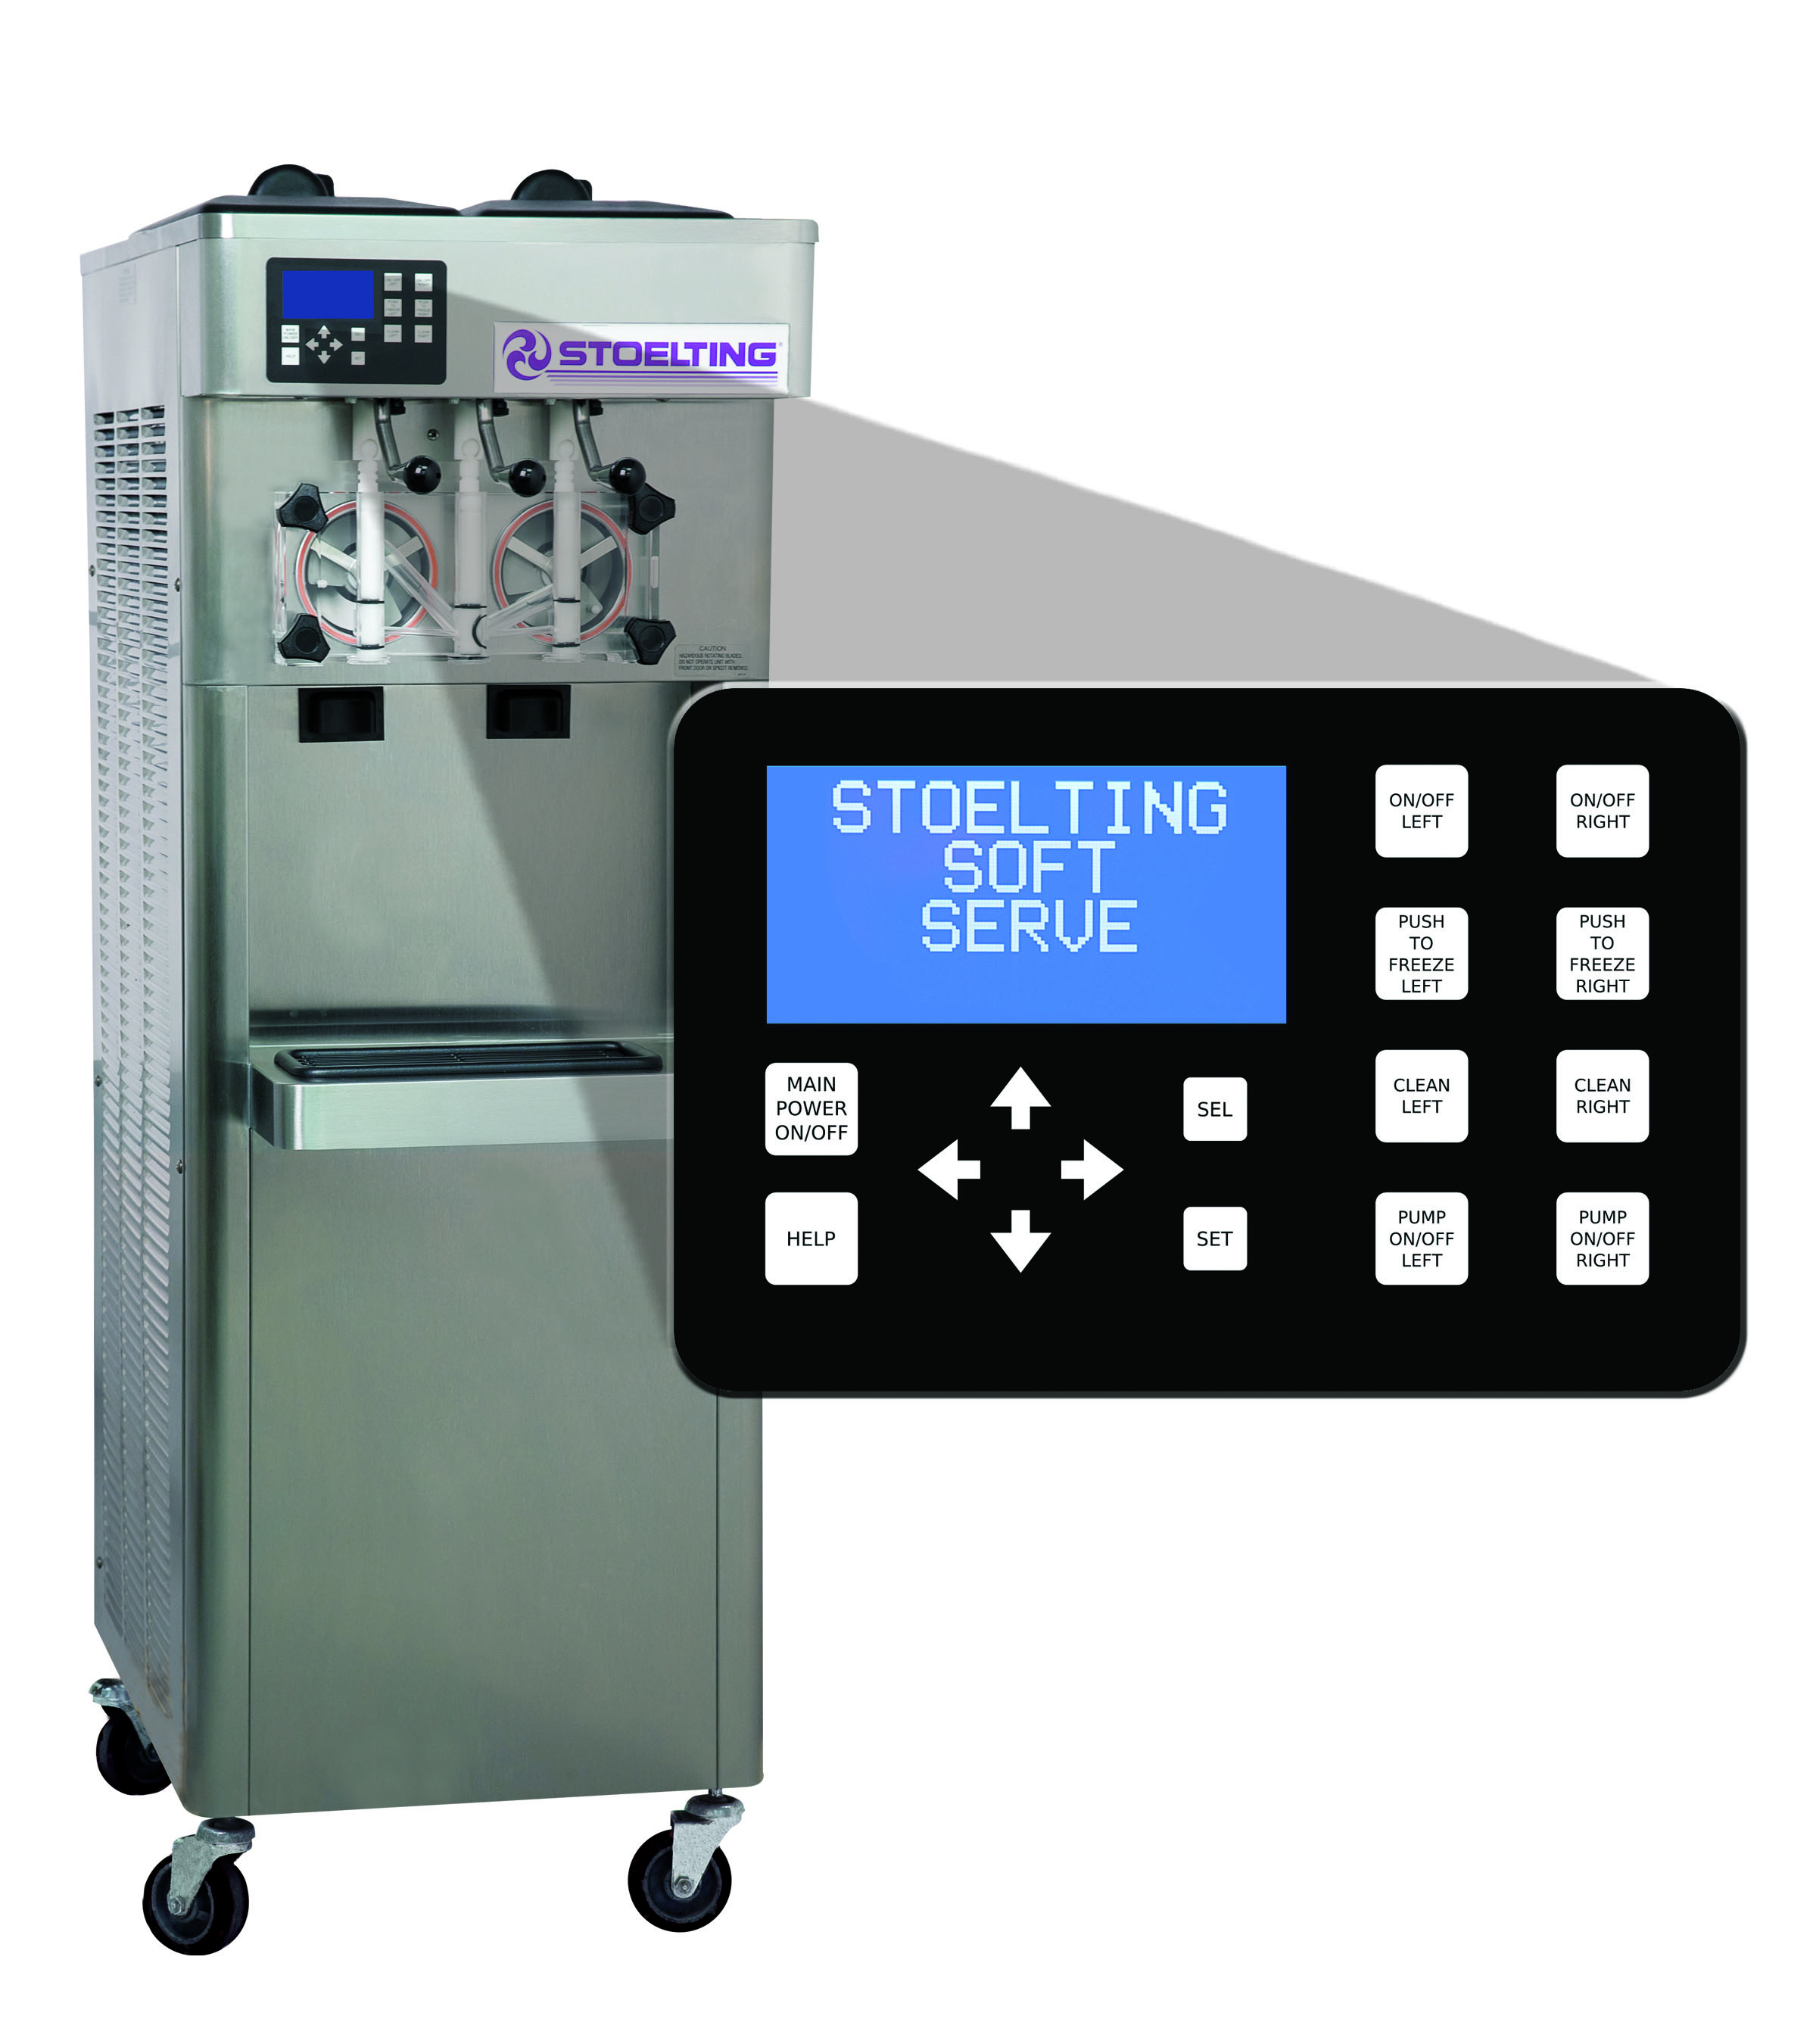 Stoelting Launches Smart Technology: ConnectI2U<br/>Wi-Fi Enabled Machines Deliver Custom Status Updates and Alerts